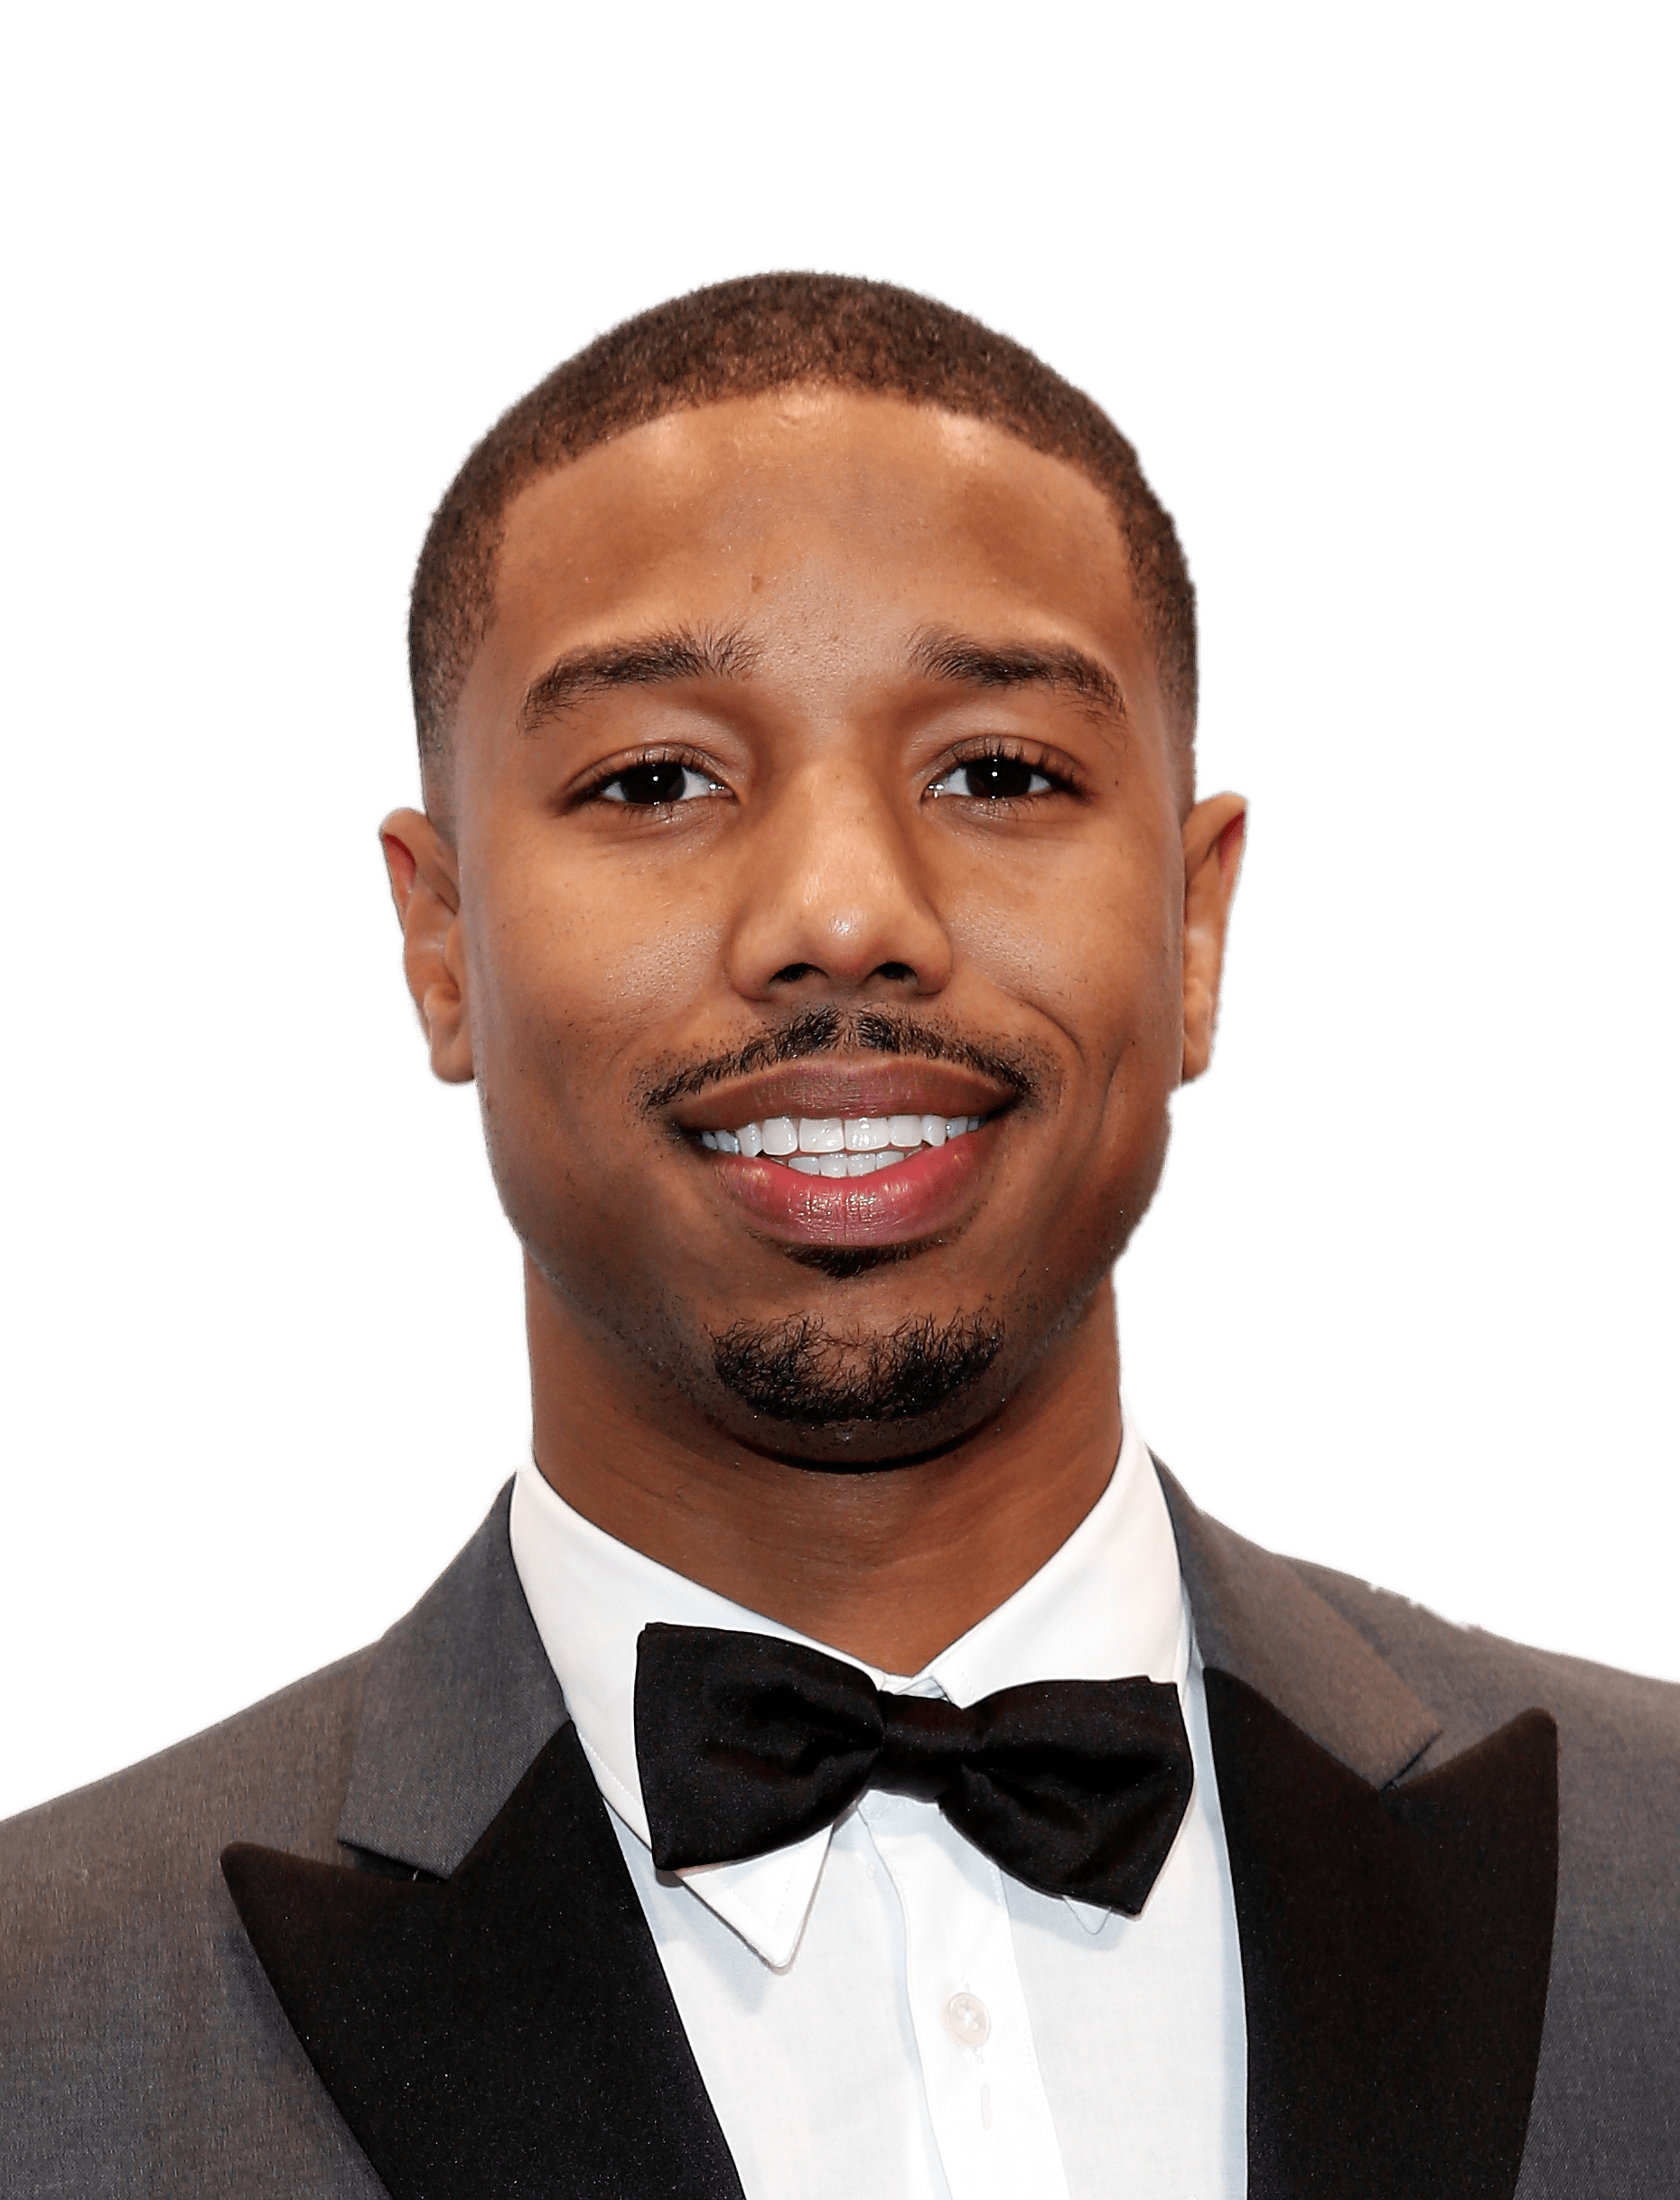 Michael b jordan png. Bow tie transparent stickpng